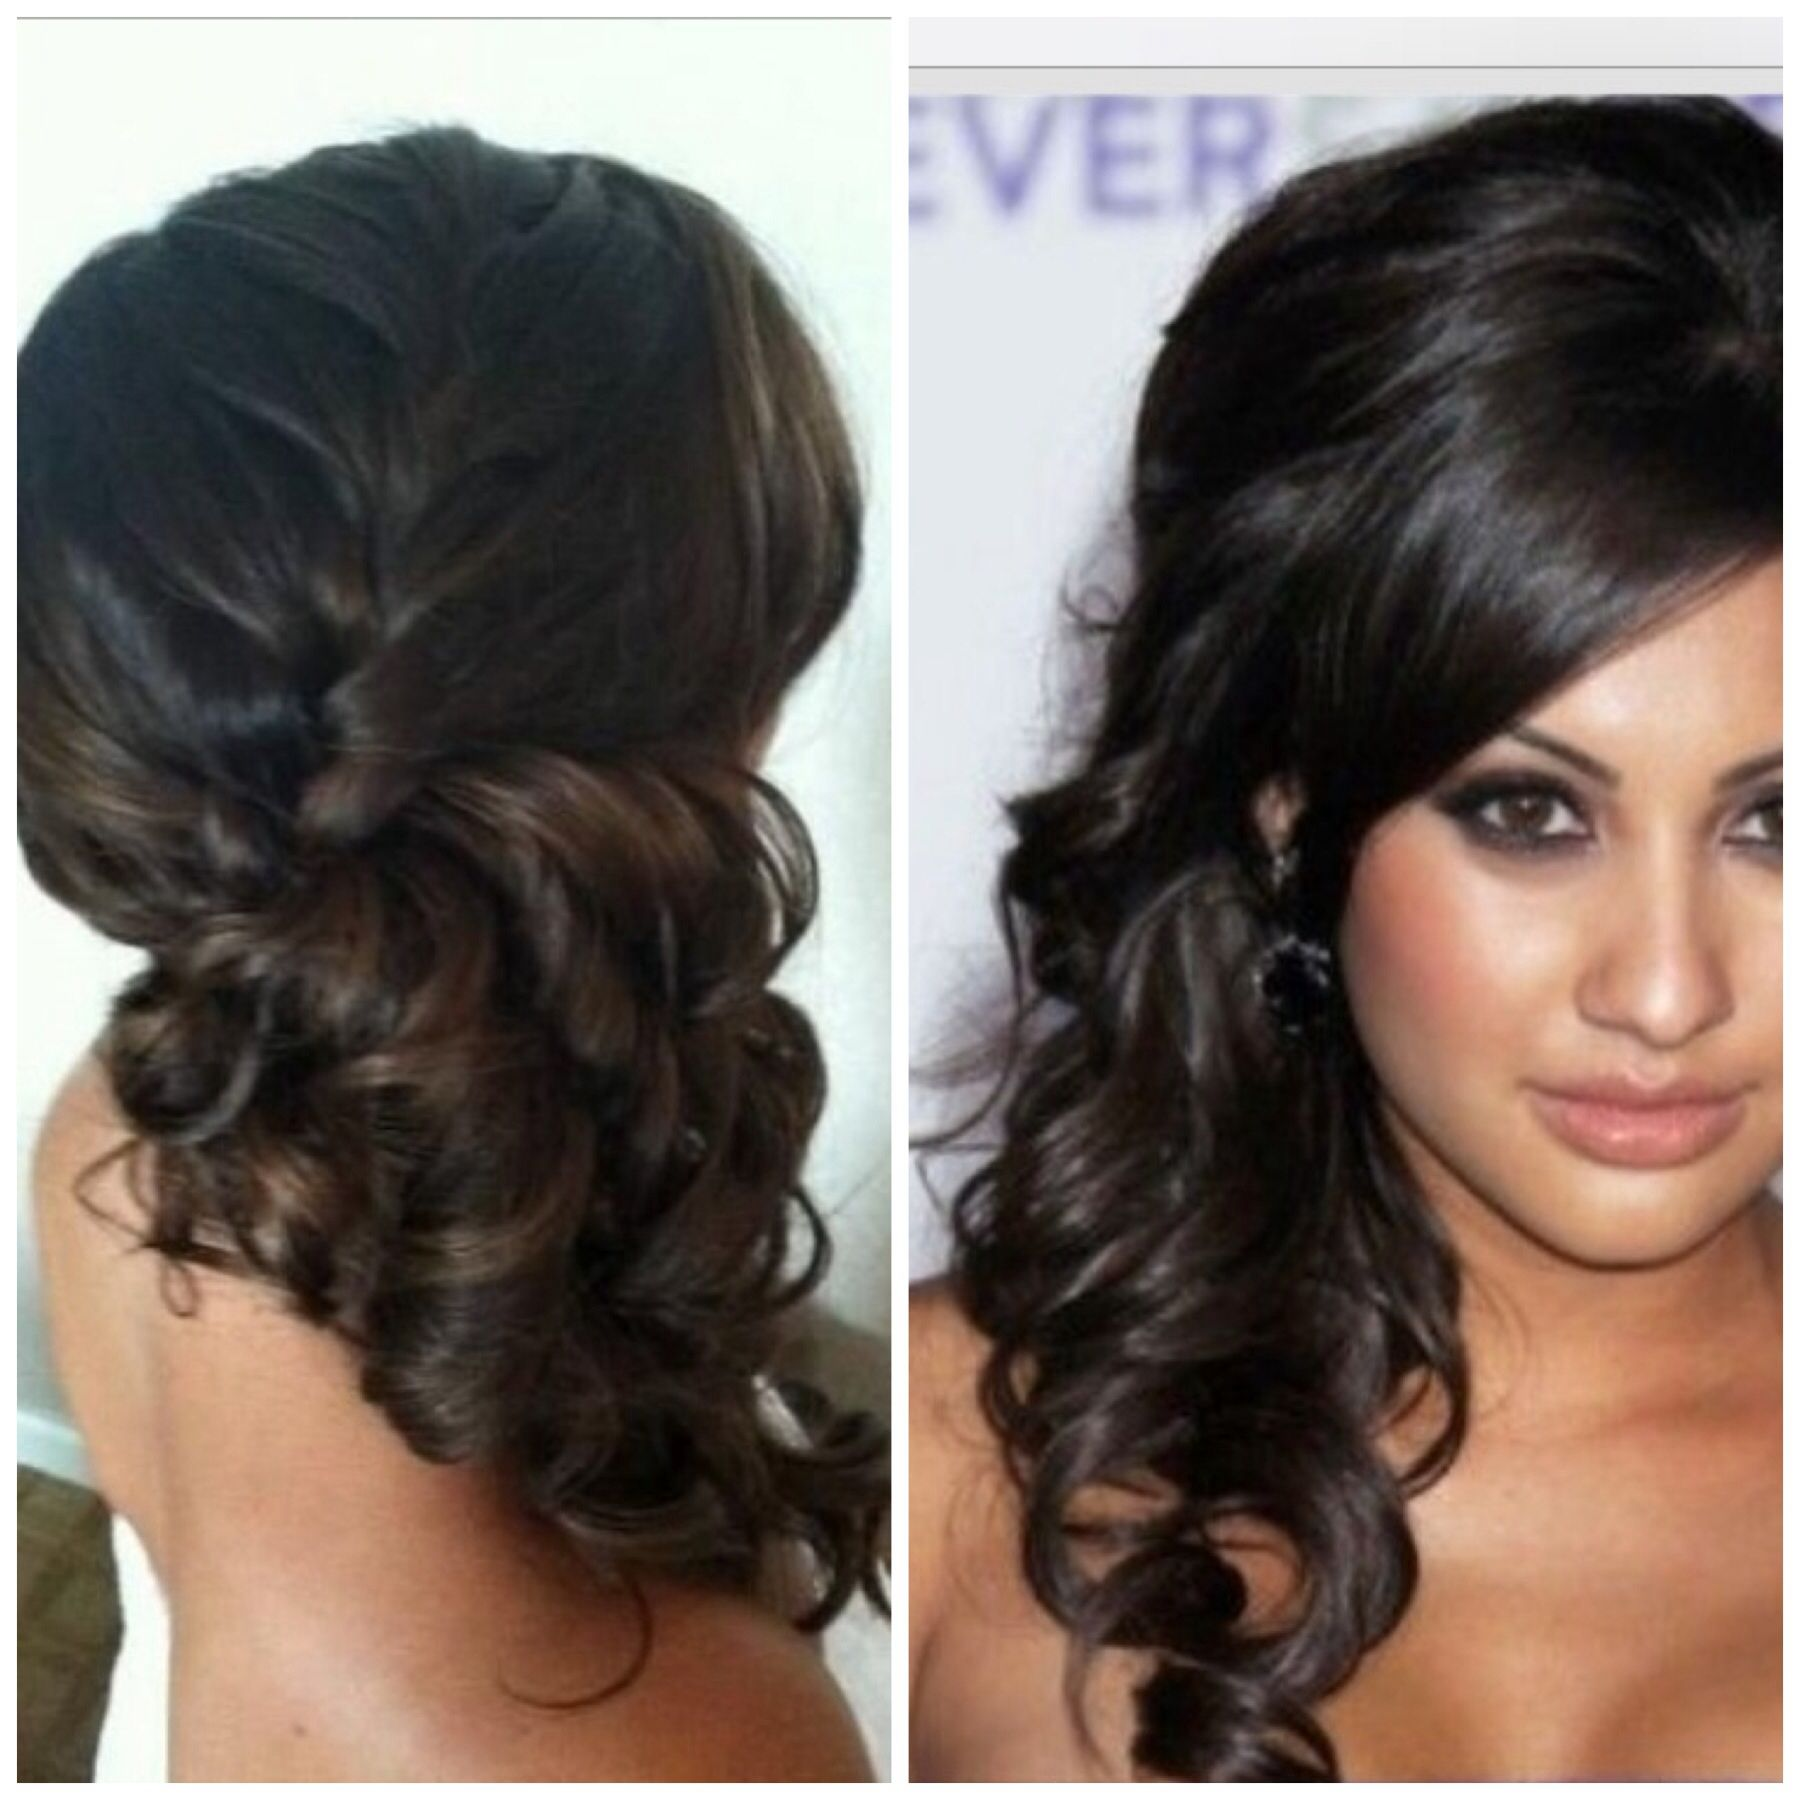 French braid side pony with curls bridesmaid hair